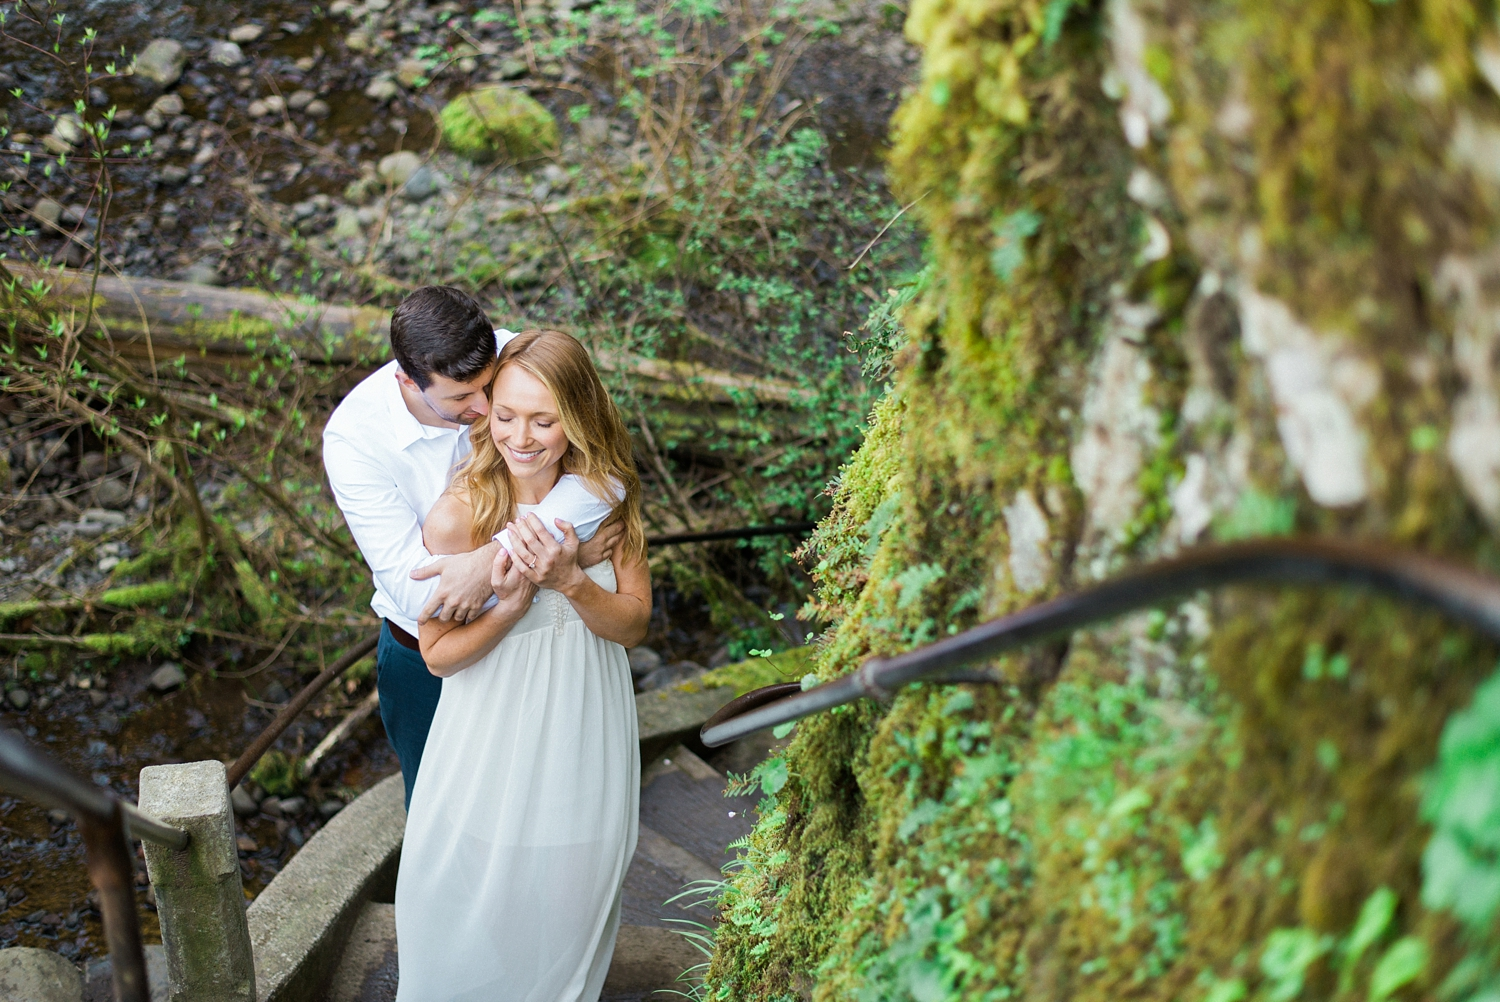 portland-engagement-columbia-river-gorge-oneonta-latourell-waterfall-shelley-marie-photo-114_cr.jpg